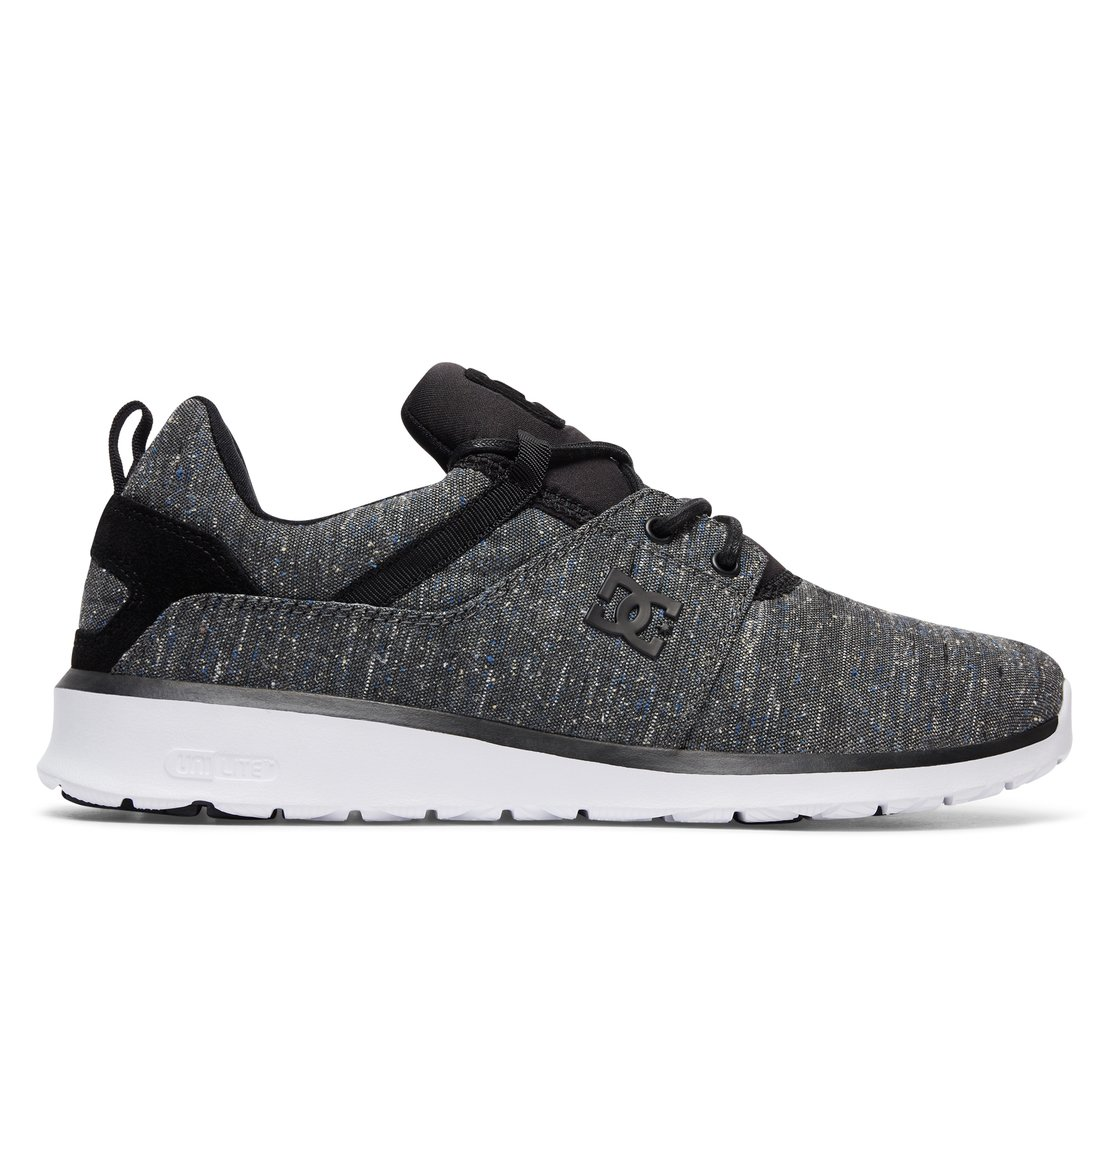 Chaussures DC Shoes Heathrow noires homme